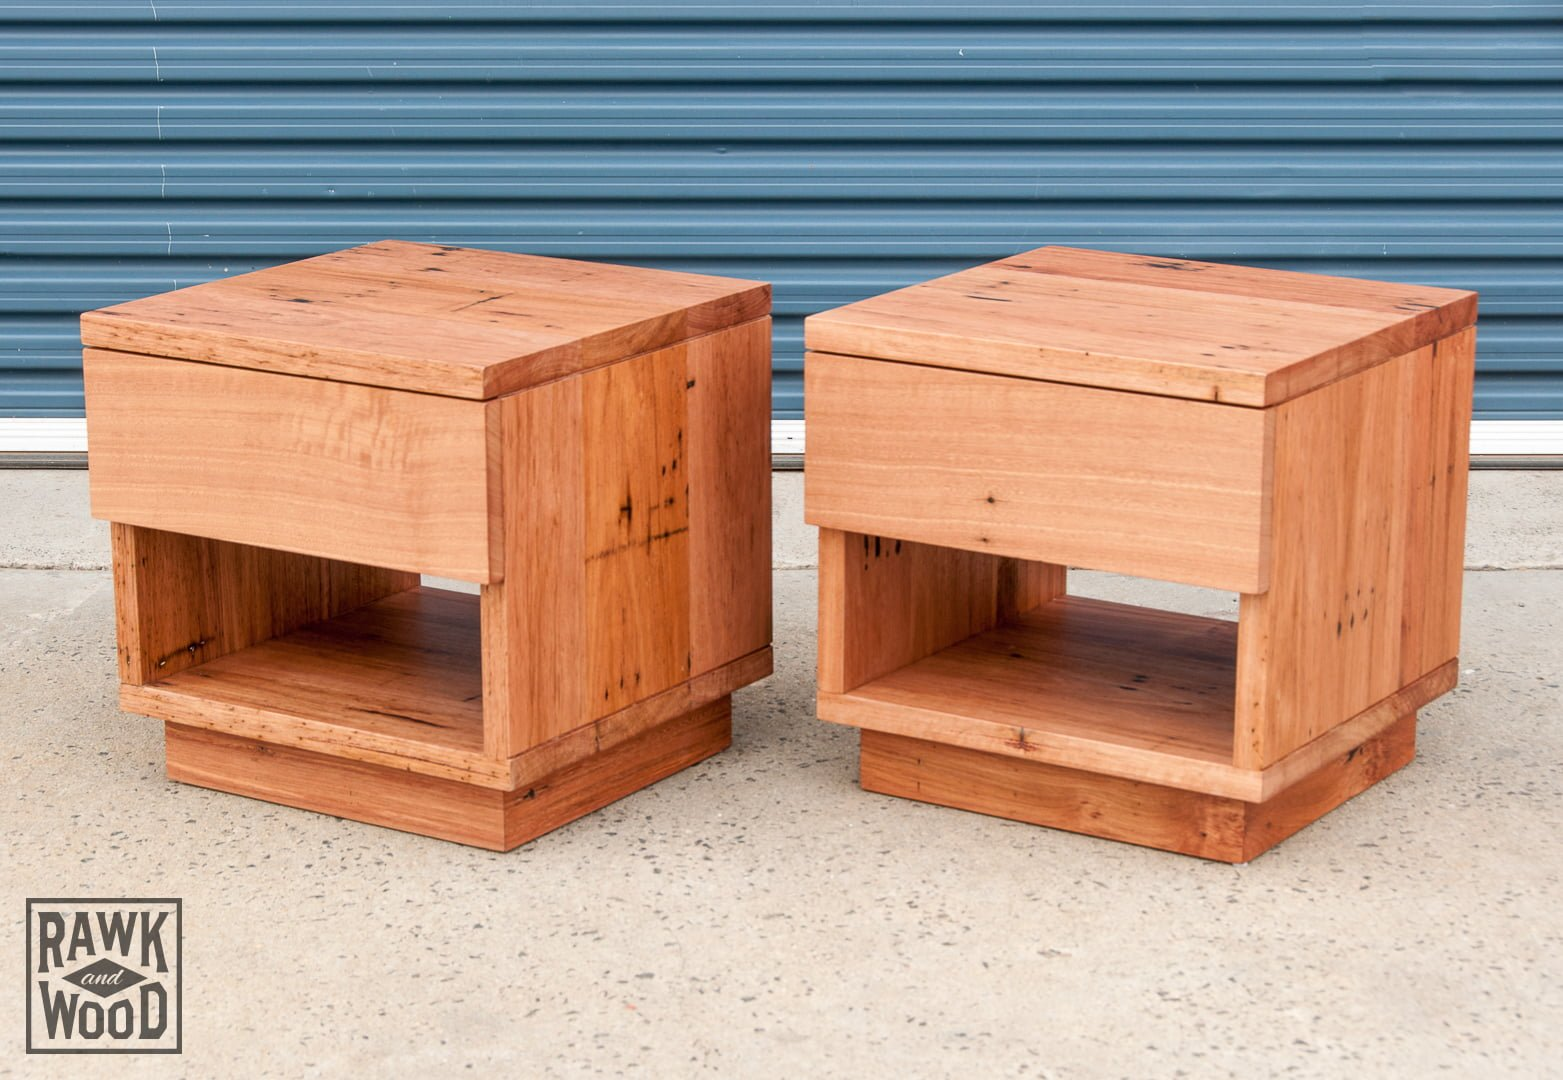 recycled-timber-bedside-tables, made in Melbourne by Rawk and Wood